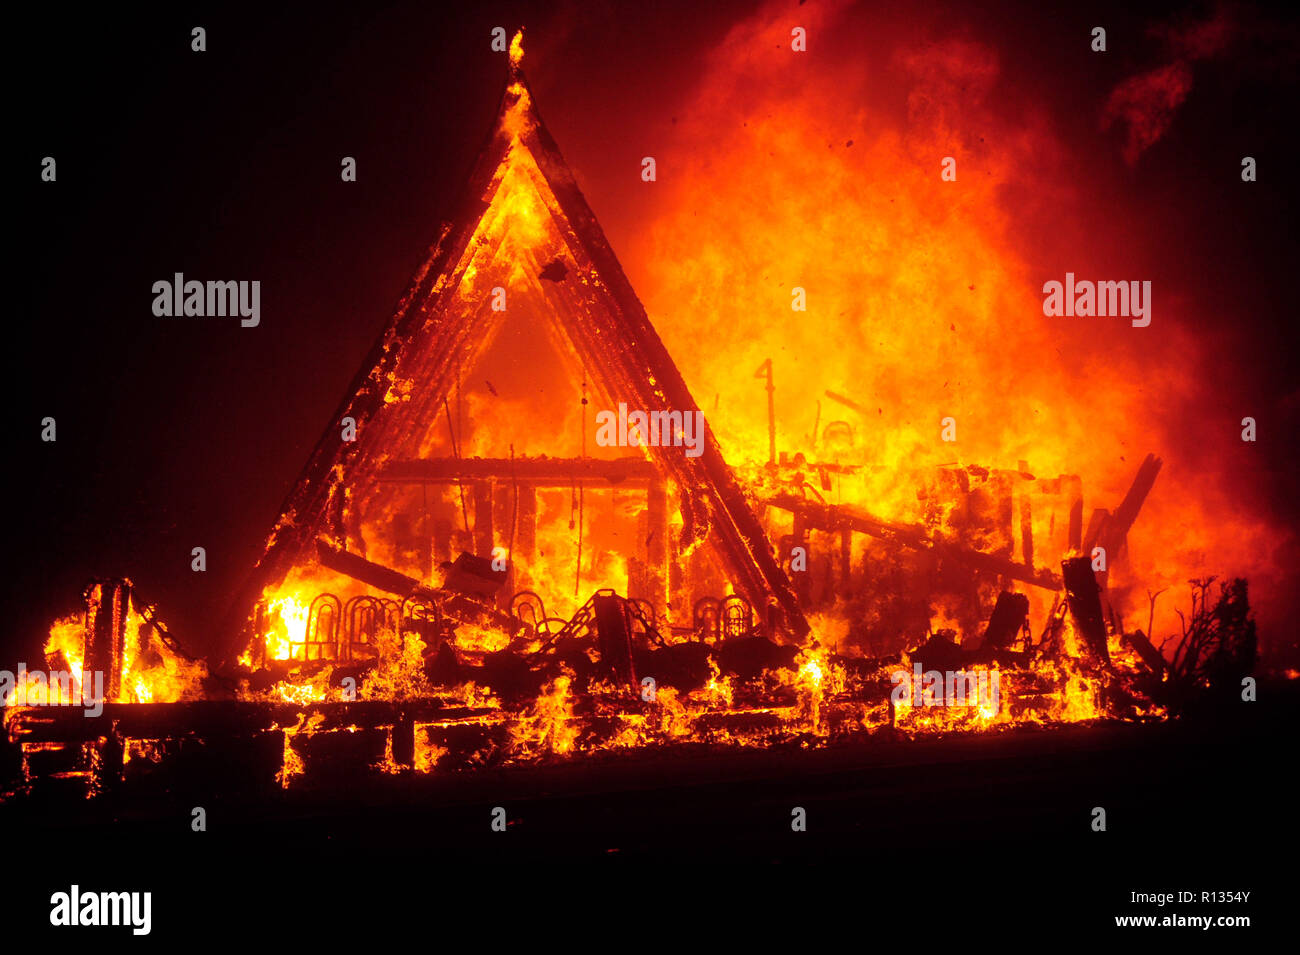 Paradise, California, USA. 8th Nov, 2018. The Camp Fire raged through the town of Paradise in Butte County Thursday. Dozens of businesses and home were destroyed as the fire moved faster than firefighters could react to it. Credit: Neal Waters/ZUMA Wire/ZUMAPRESS.com/Alamy Live News - Stock Image